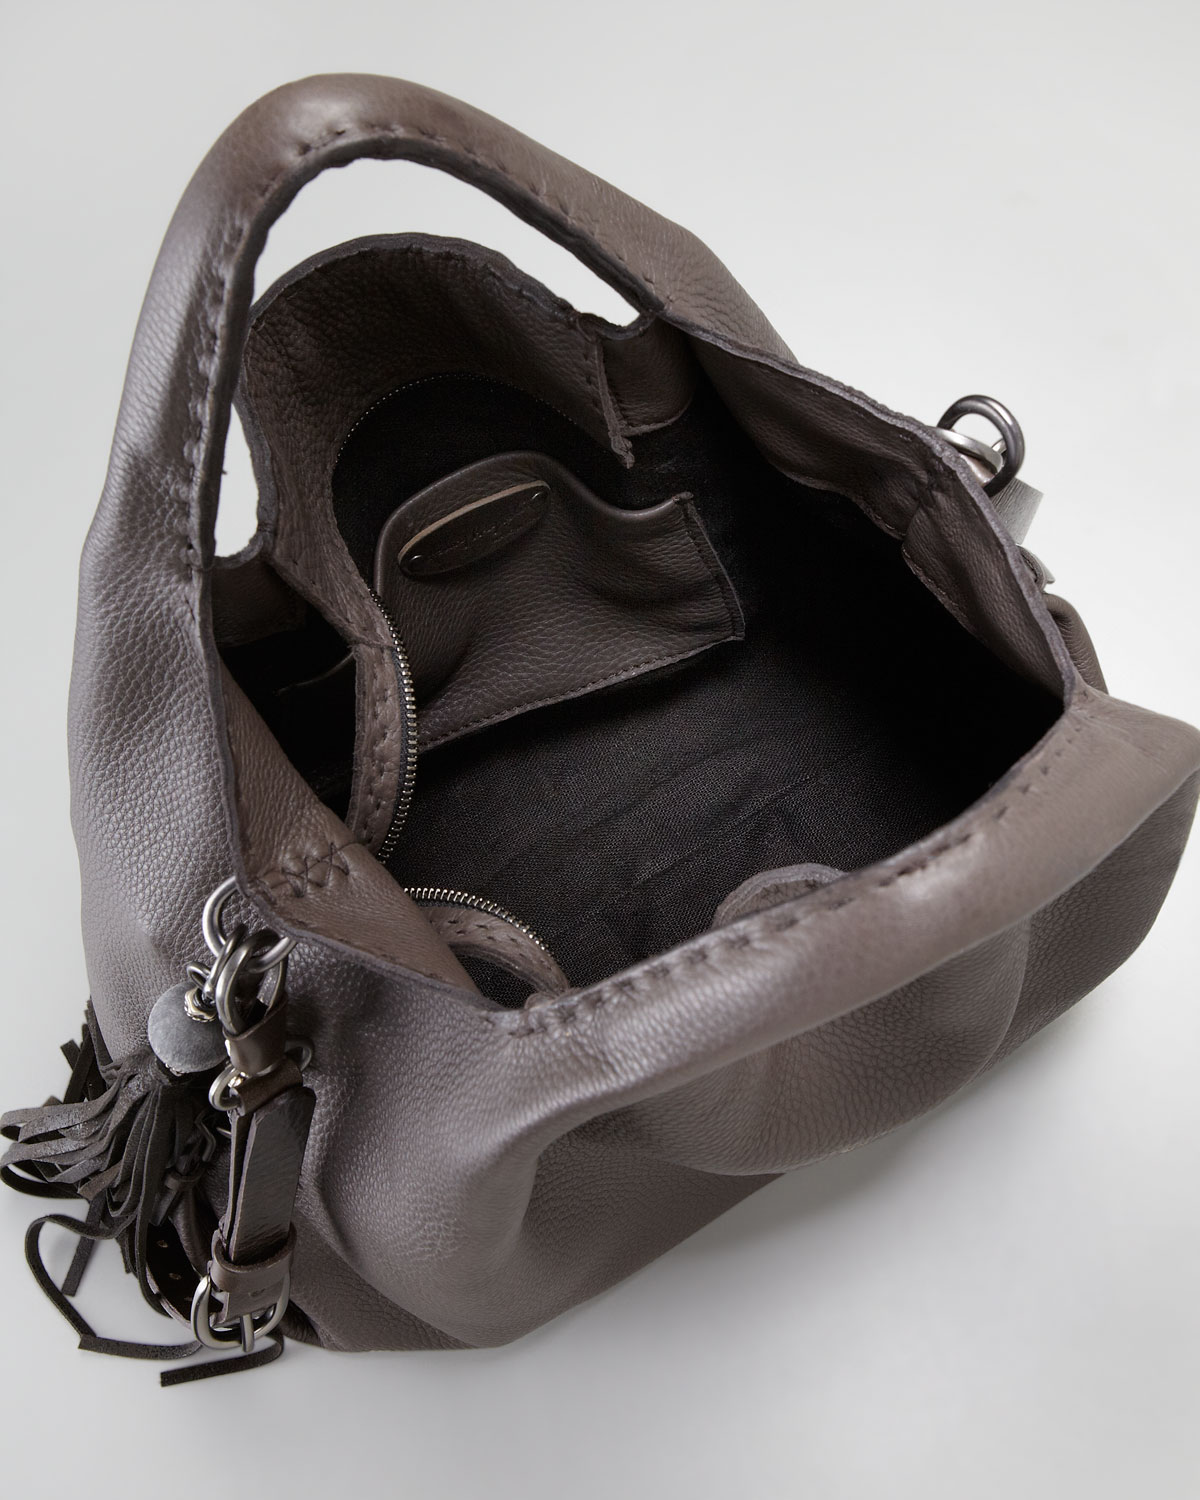 6268b02a0a Henry Beguelin Cervo Leather Hobo Bag in Gray - Lyst